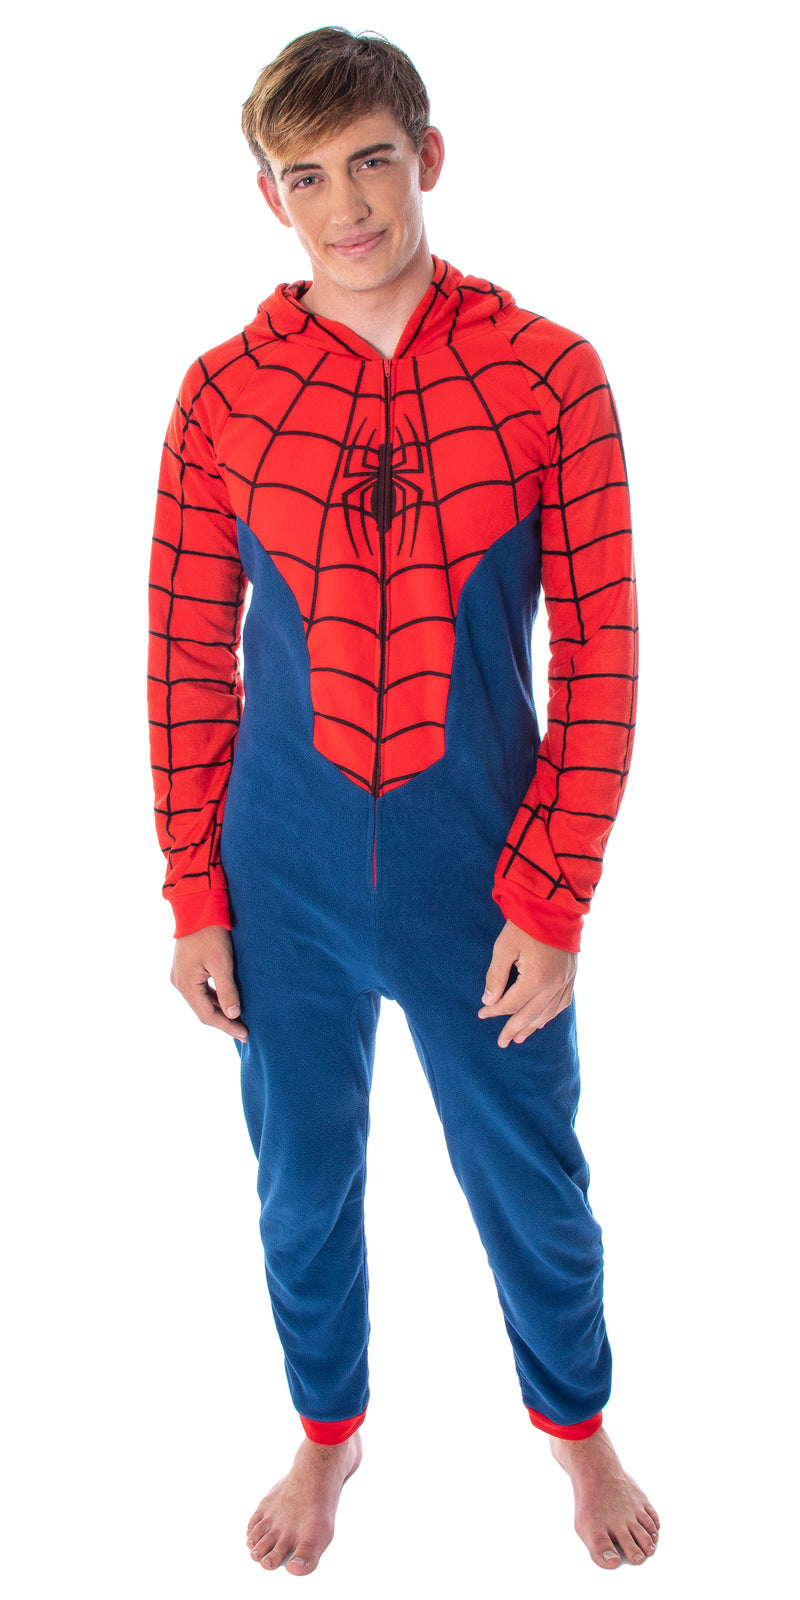 Marvel Comics Men's Classic Spiderman Costume Pajama Union Suit One-Piece Loungewear PJ Outfit